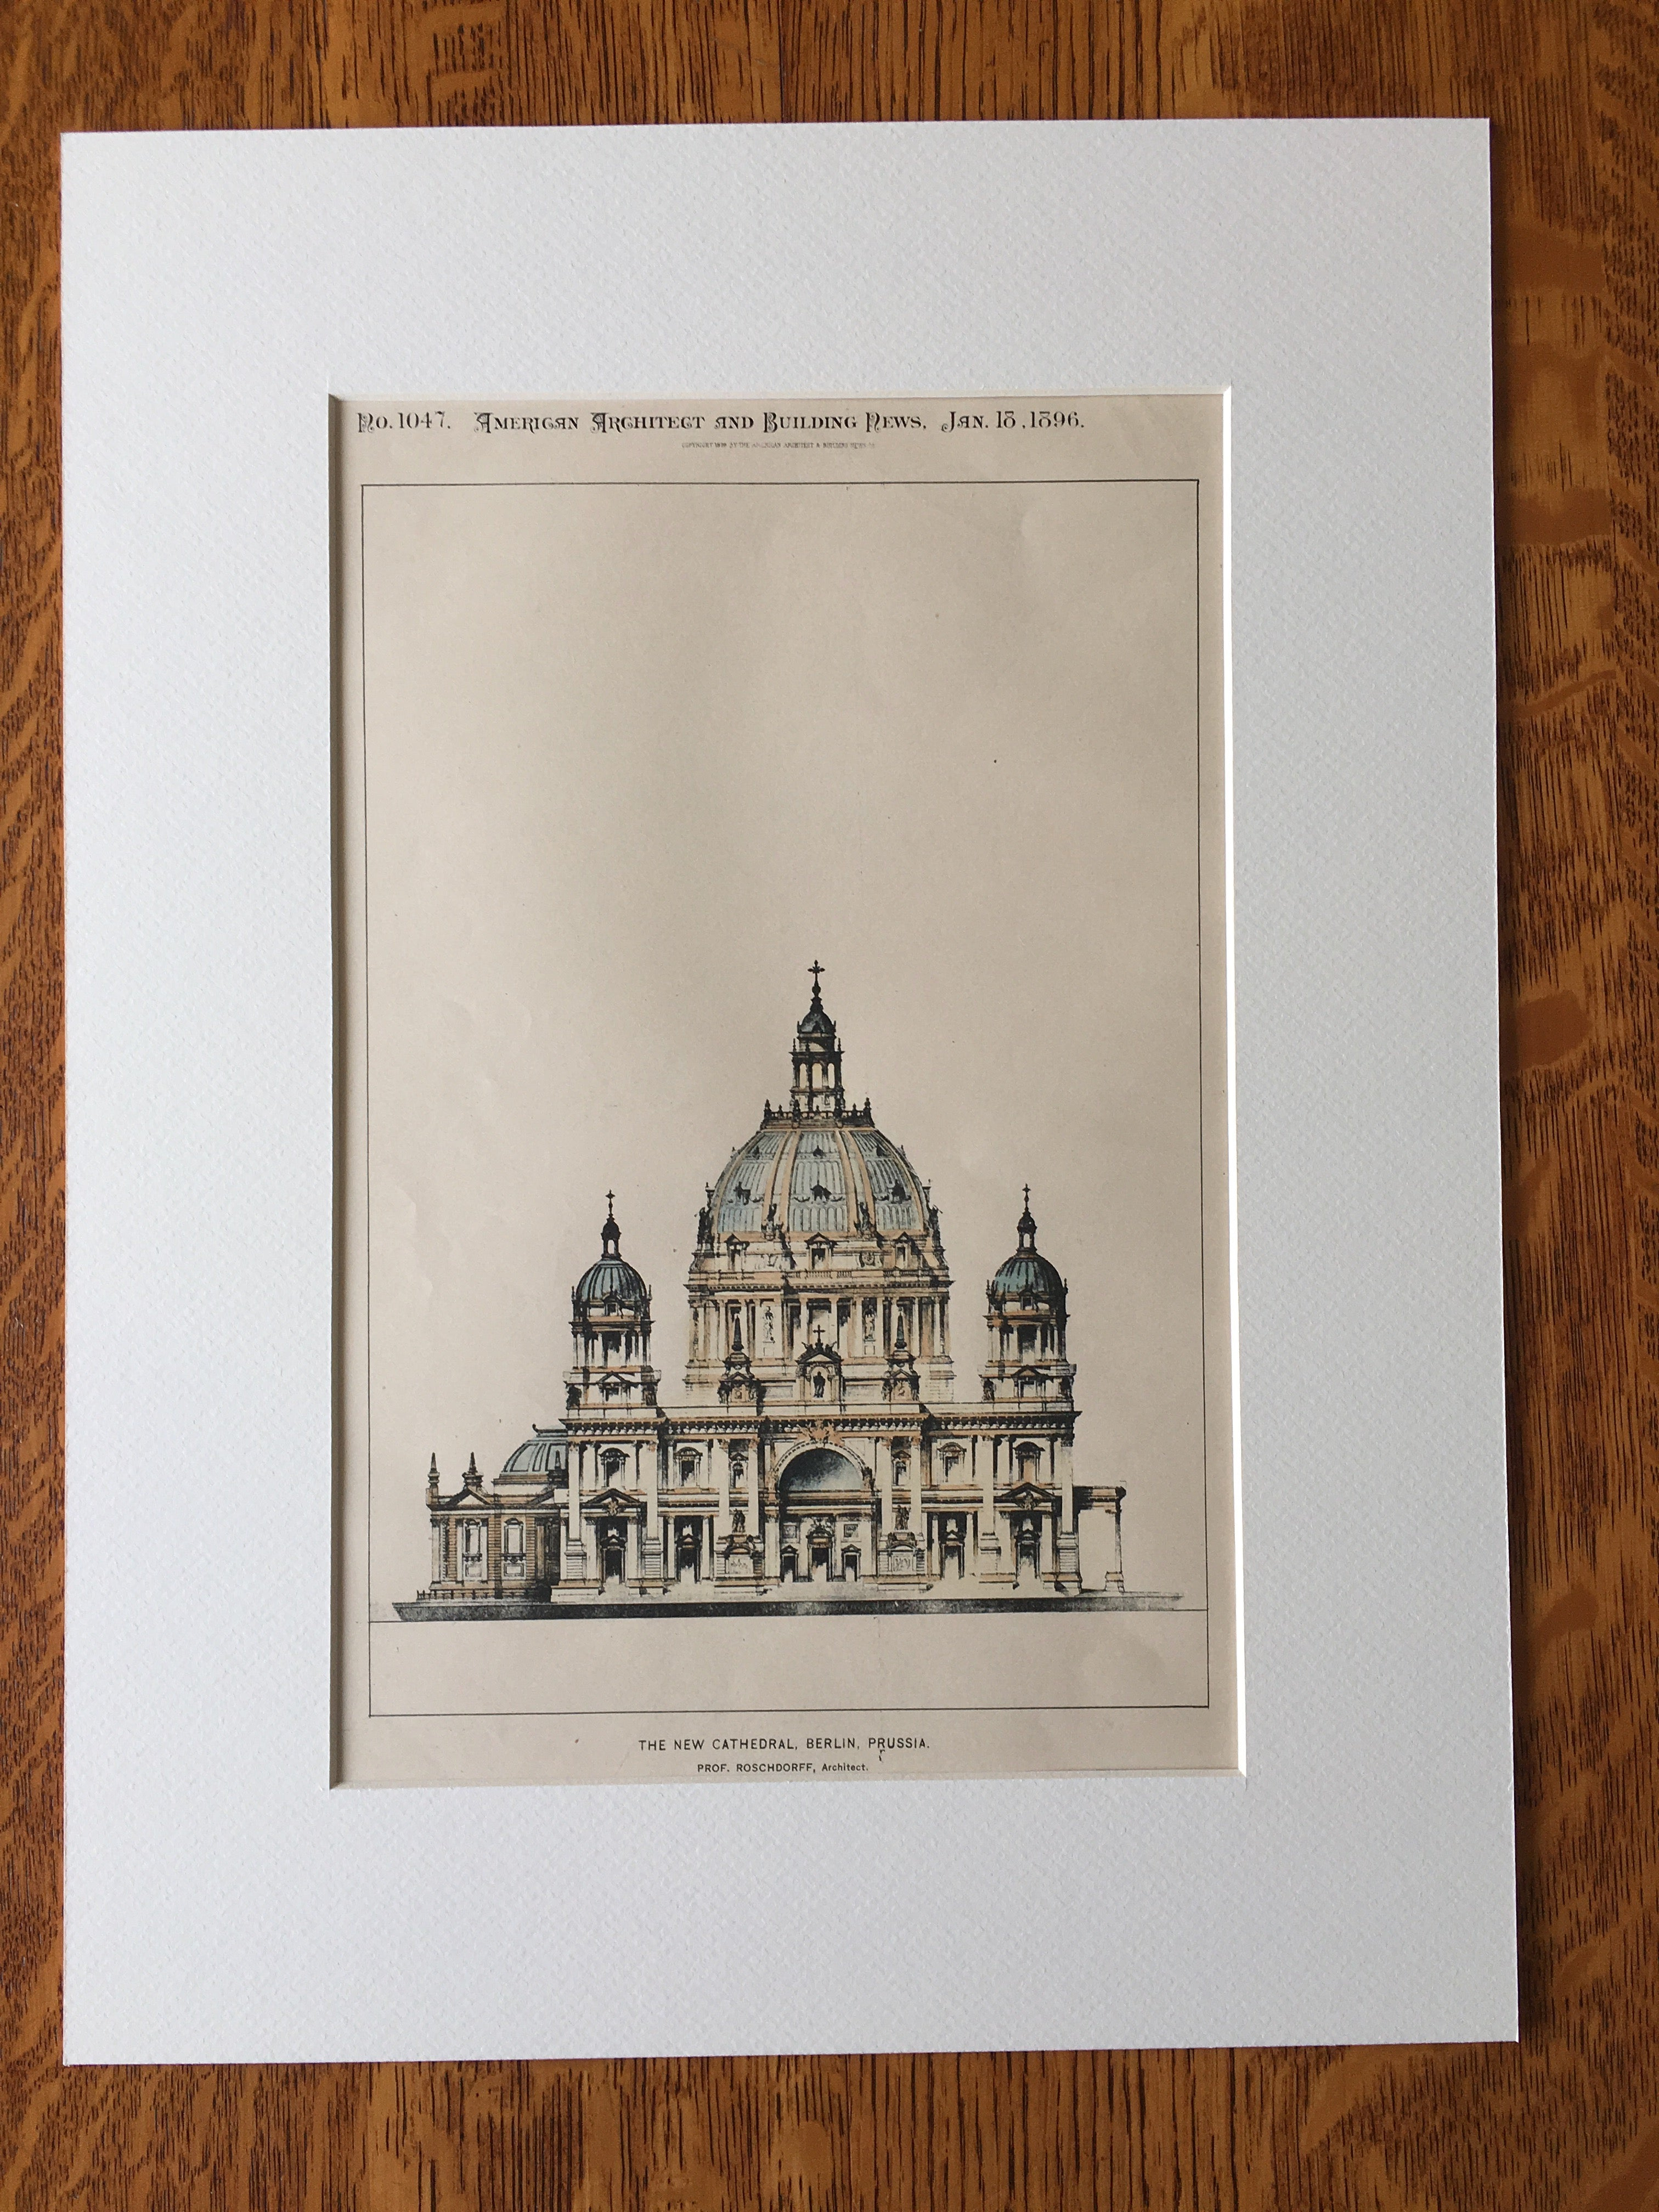 New Cathedral, Berlin, Prussia, Germany, 1896, Roschdorff, Original Hand Colored -